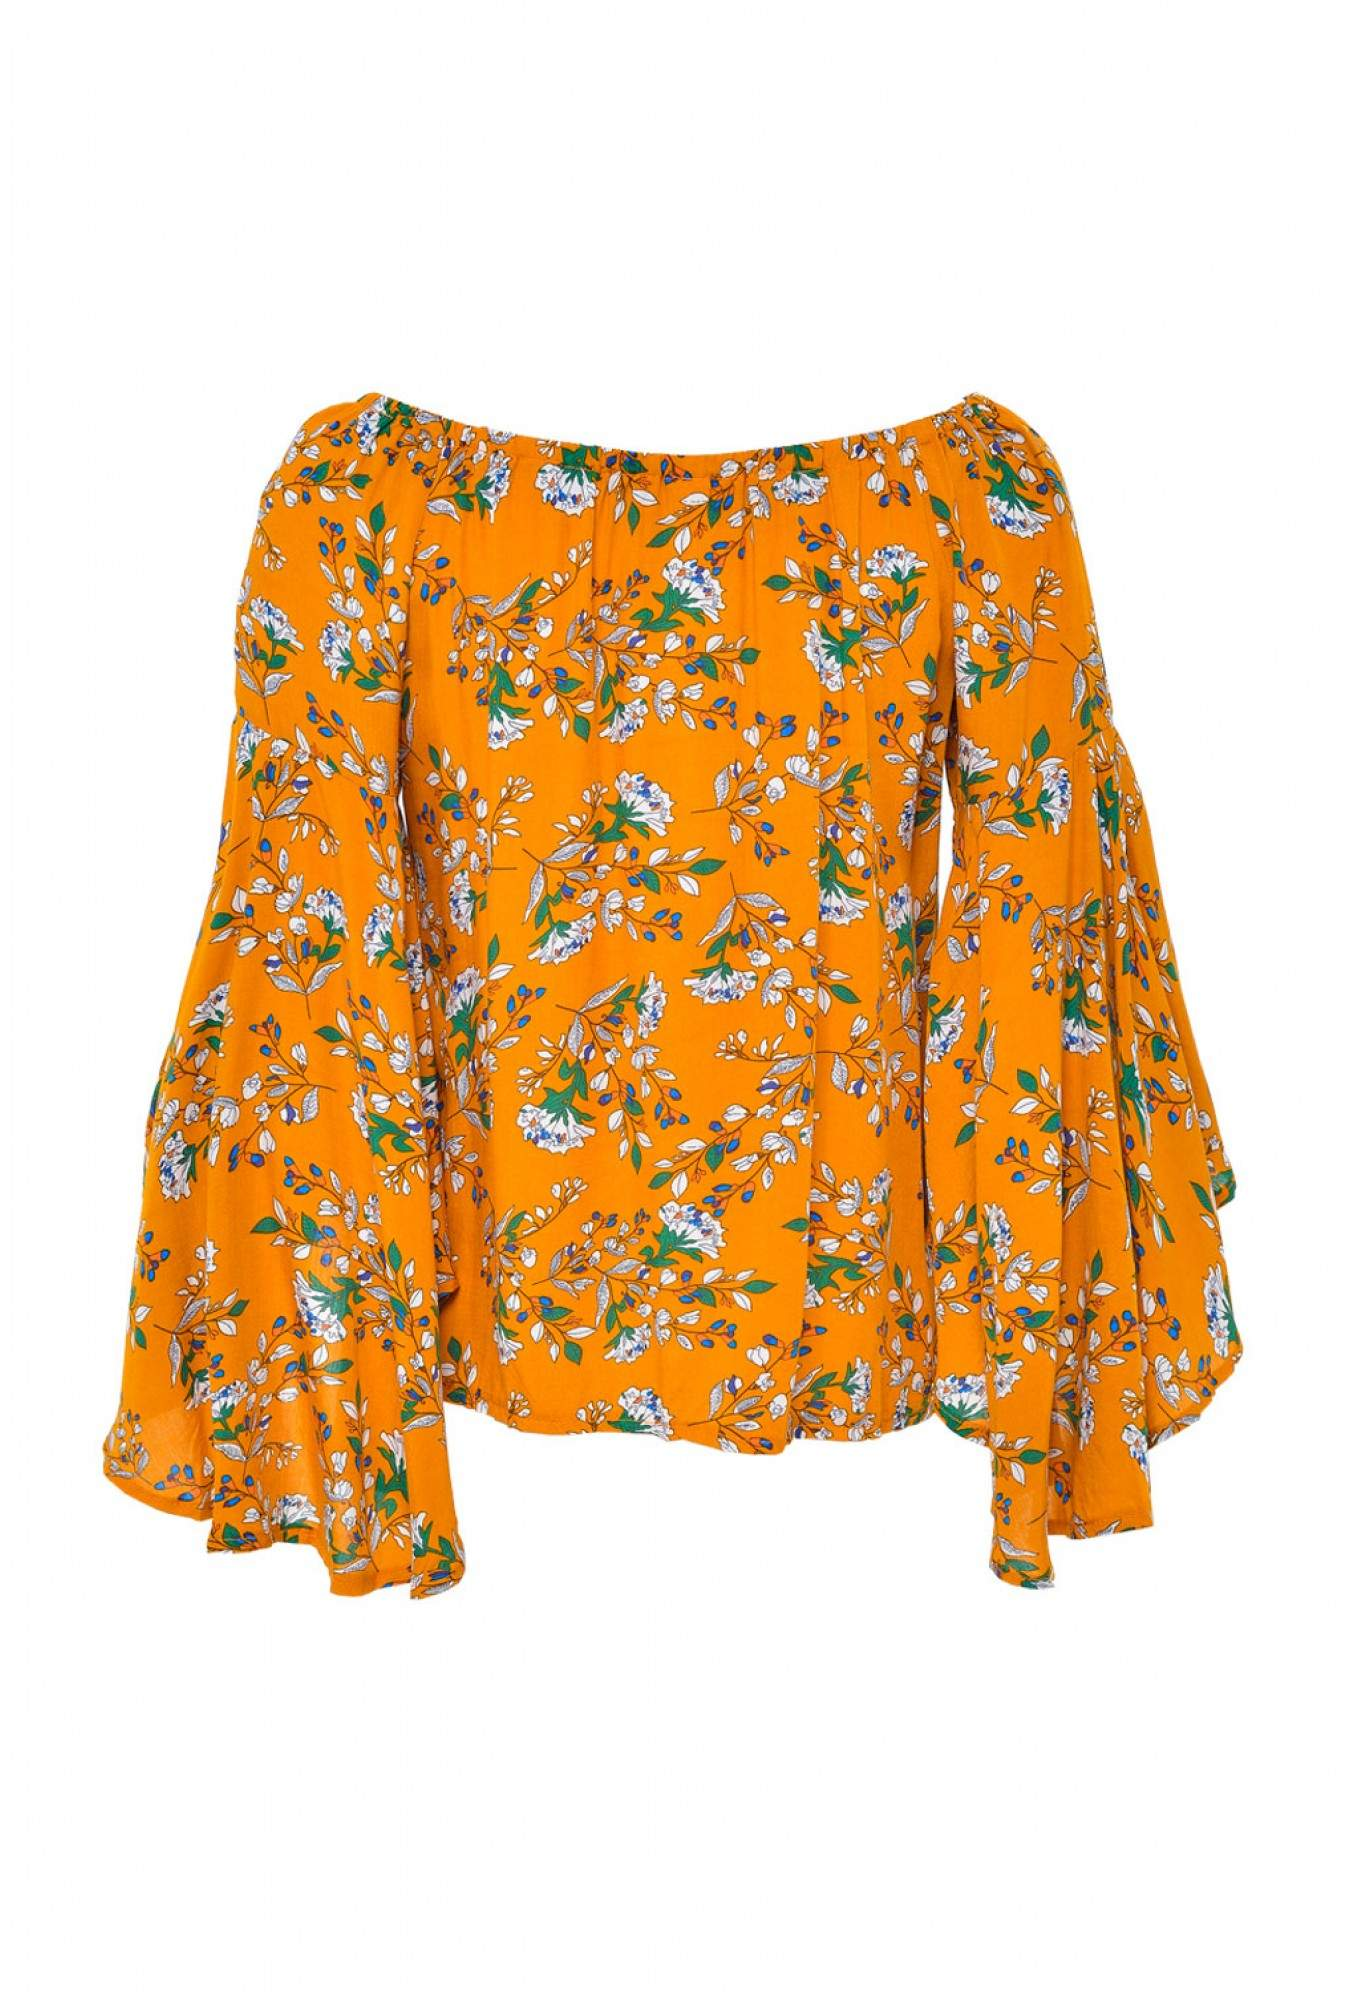 3eacf4540fdf29 More Views. Lexi Floral Off Shoulder Top in Mustard